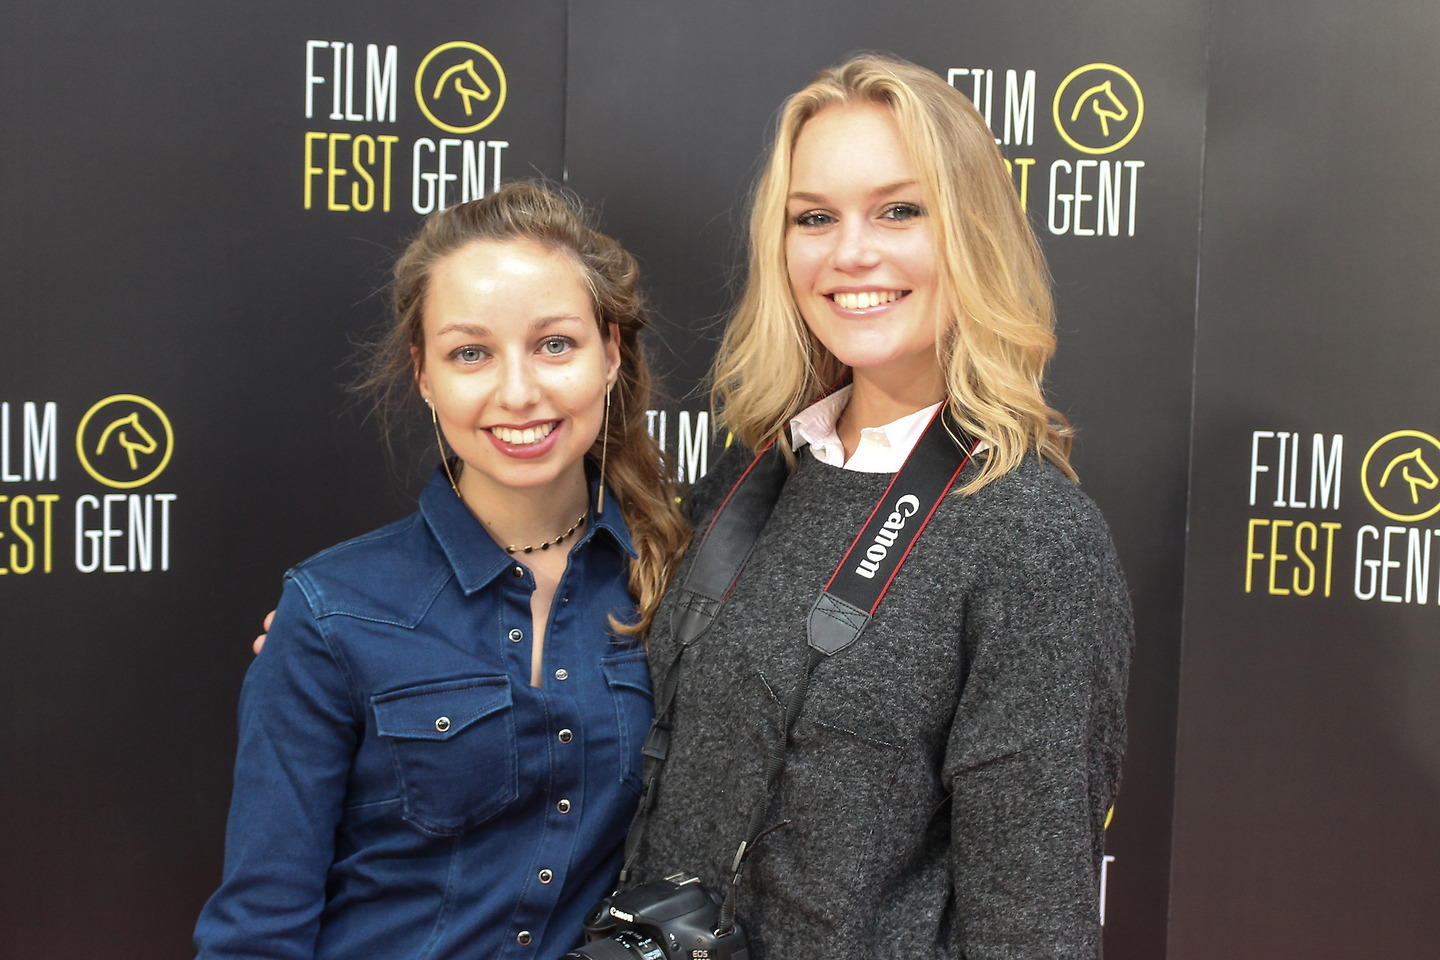 Film Fest Gent - Photowall Post Plaza:(10-10-2016)